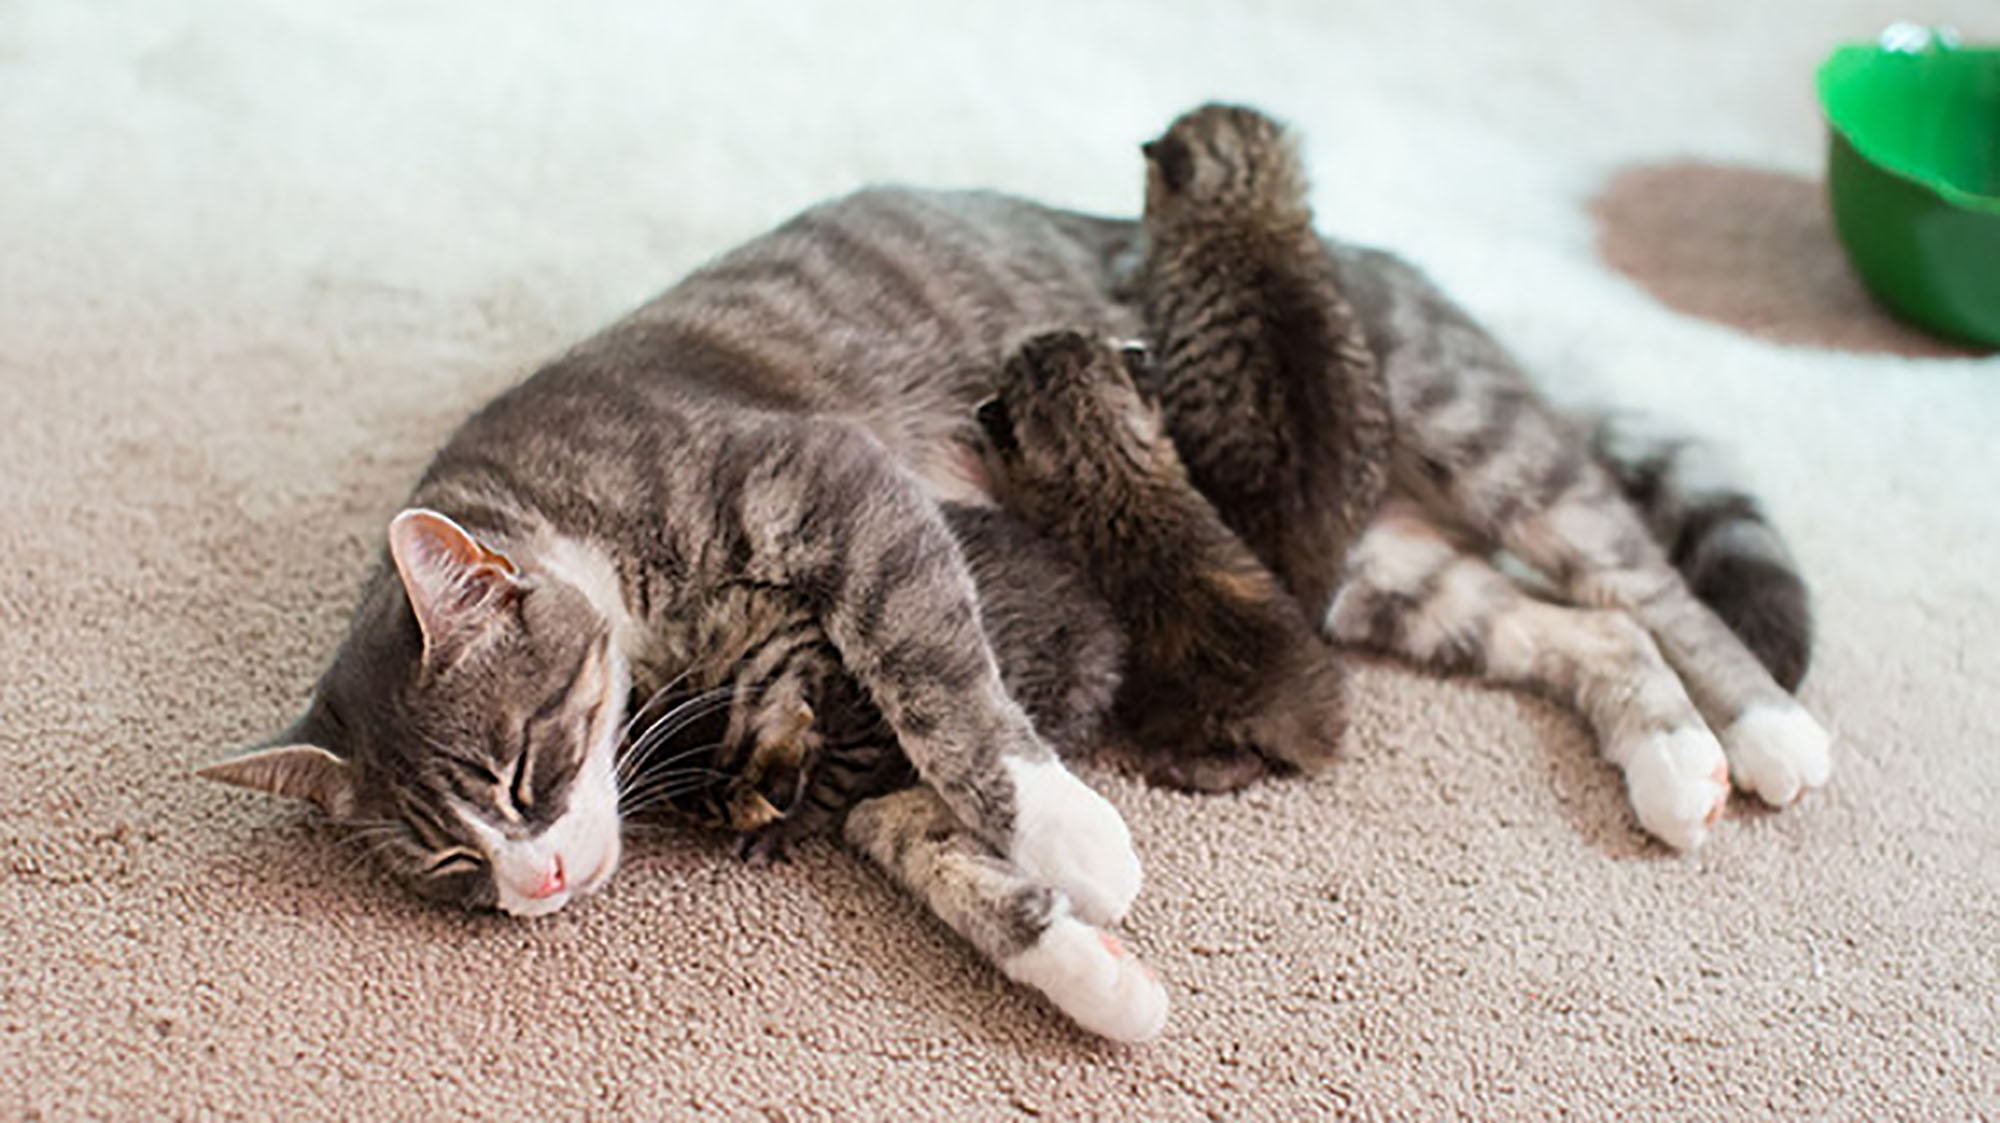 Cat who lost her own litter has adopted three abandoned kittens